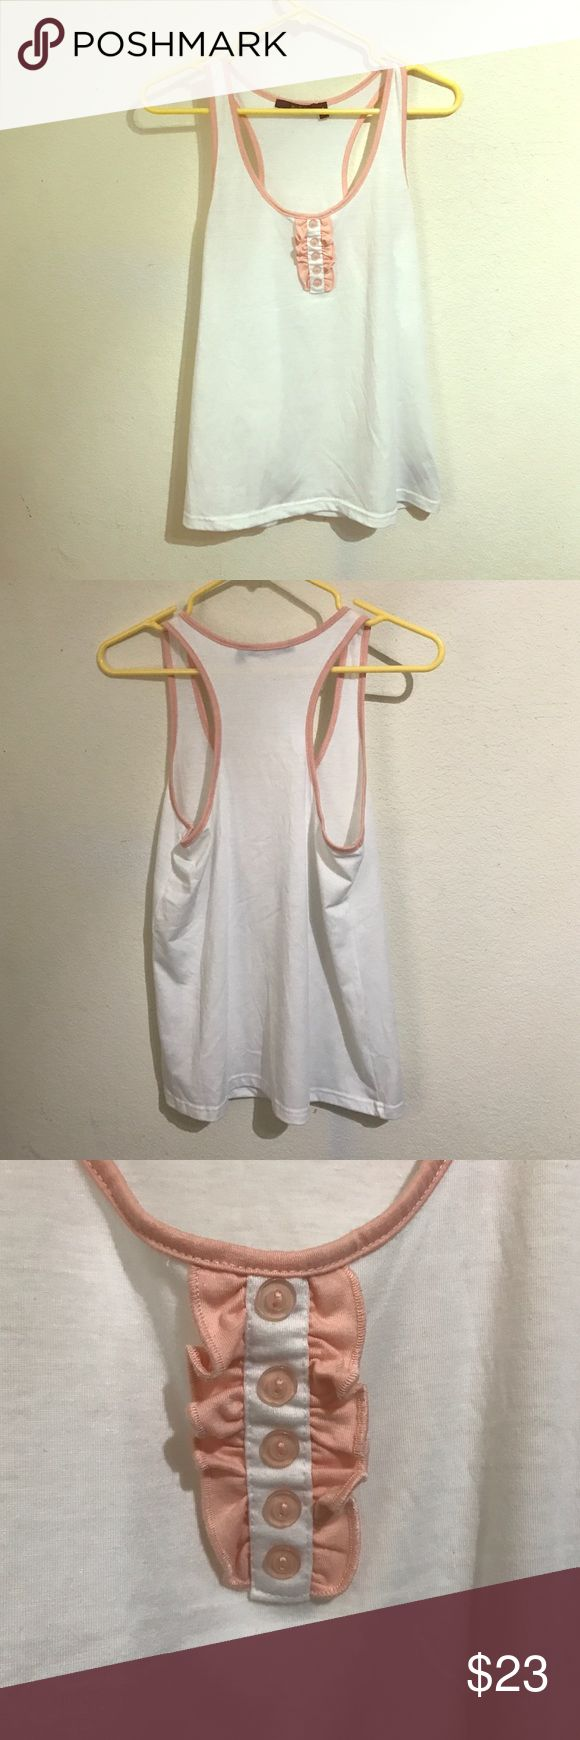 Cute White Tank Top White tank top with pink detail around the neck. Only use once. Papaya Clothing  Tops Tank Tops